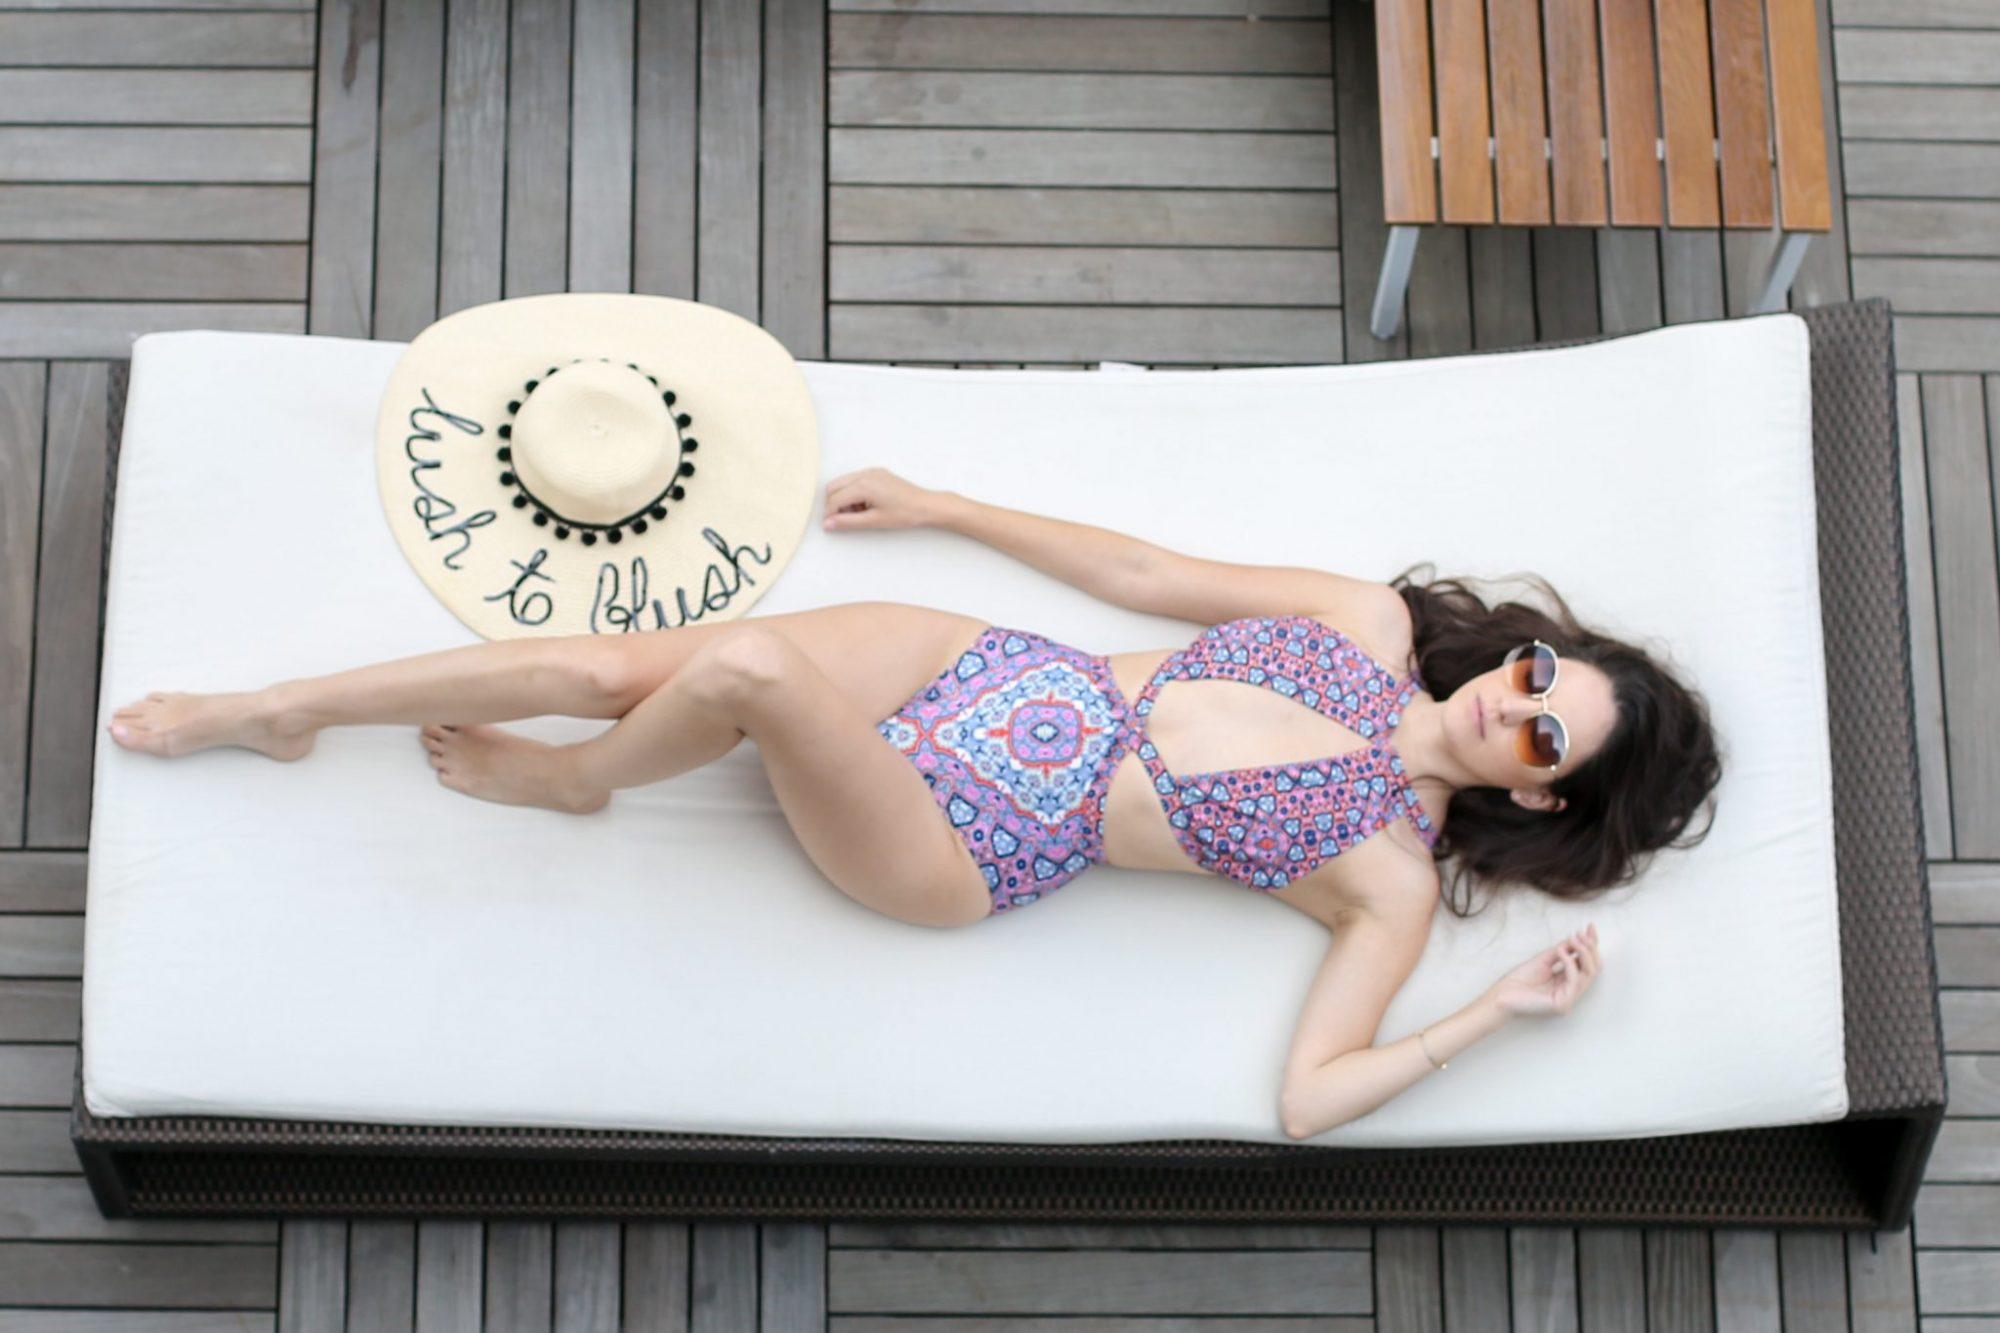 hyatt mexico city, where to stay in mexico city, laying out in mexico city, pools in mexico city, mink pink Wild For The Night Swimsuit, custom sunhat